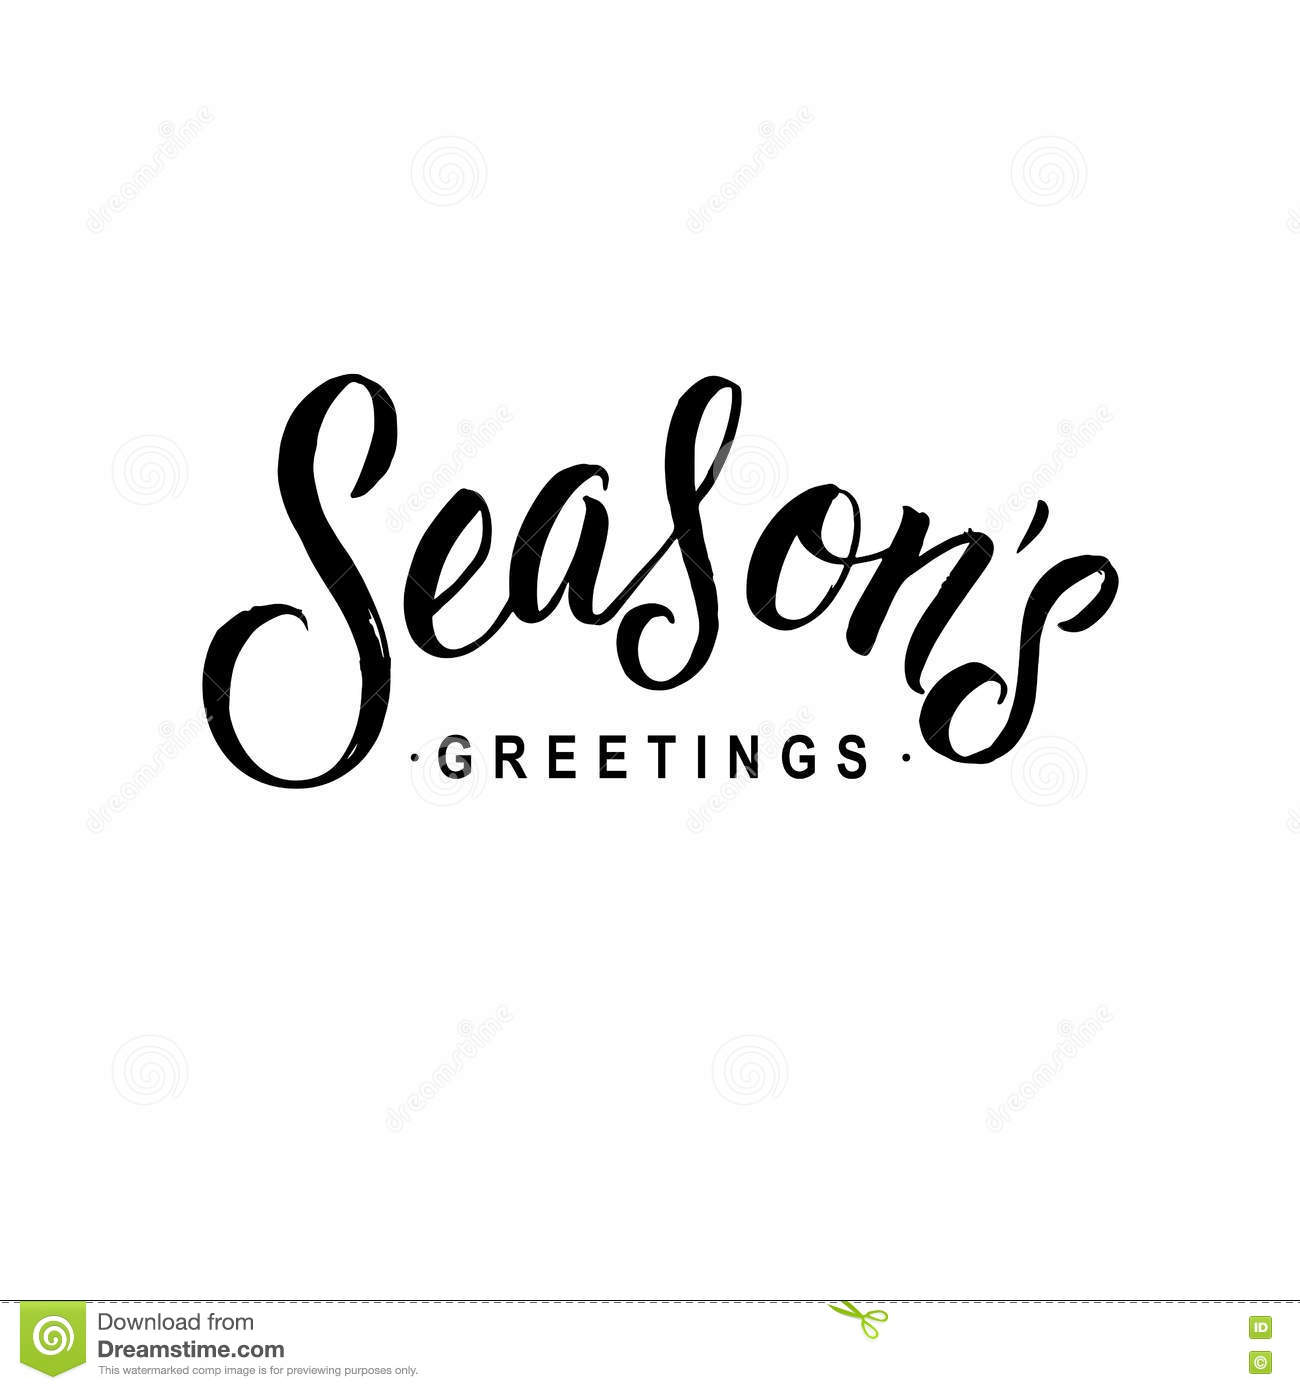 Seasons greetings calligraphy greeting card typography on seasons greetings calligraphy greeting card typography on background m4hsunfo Choice Image